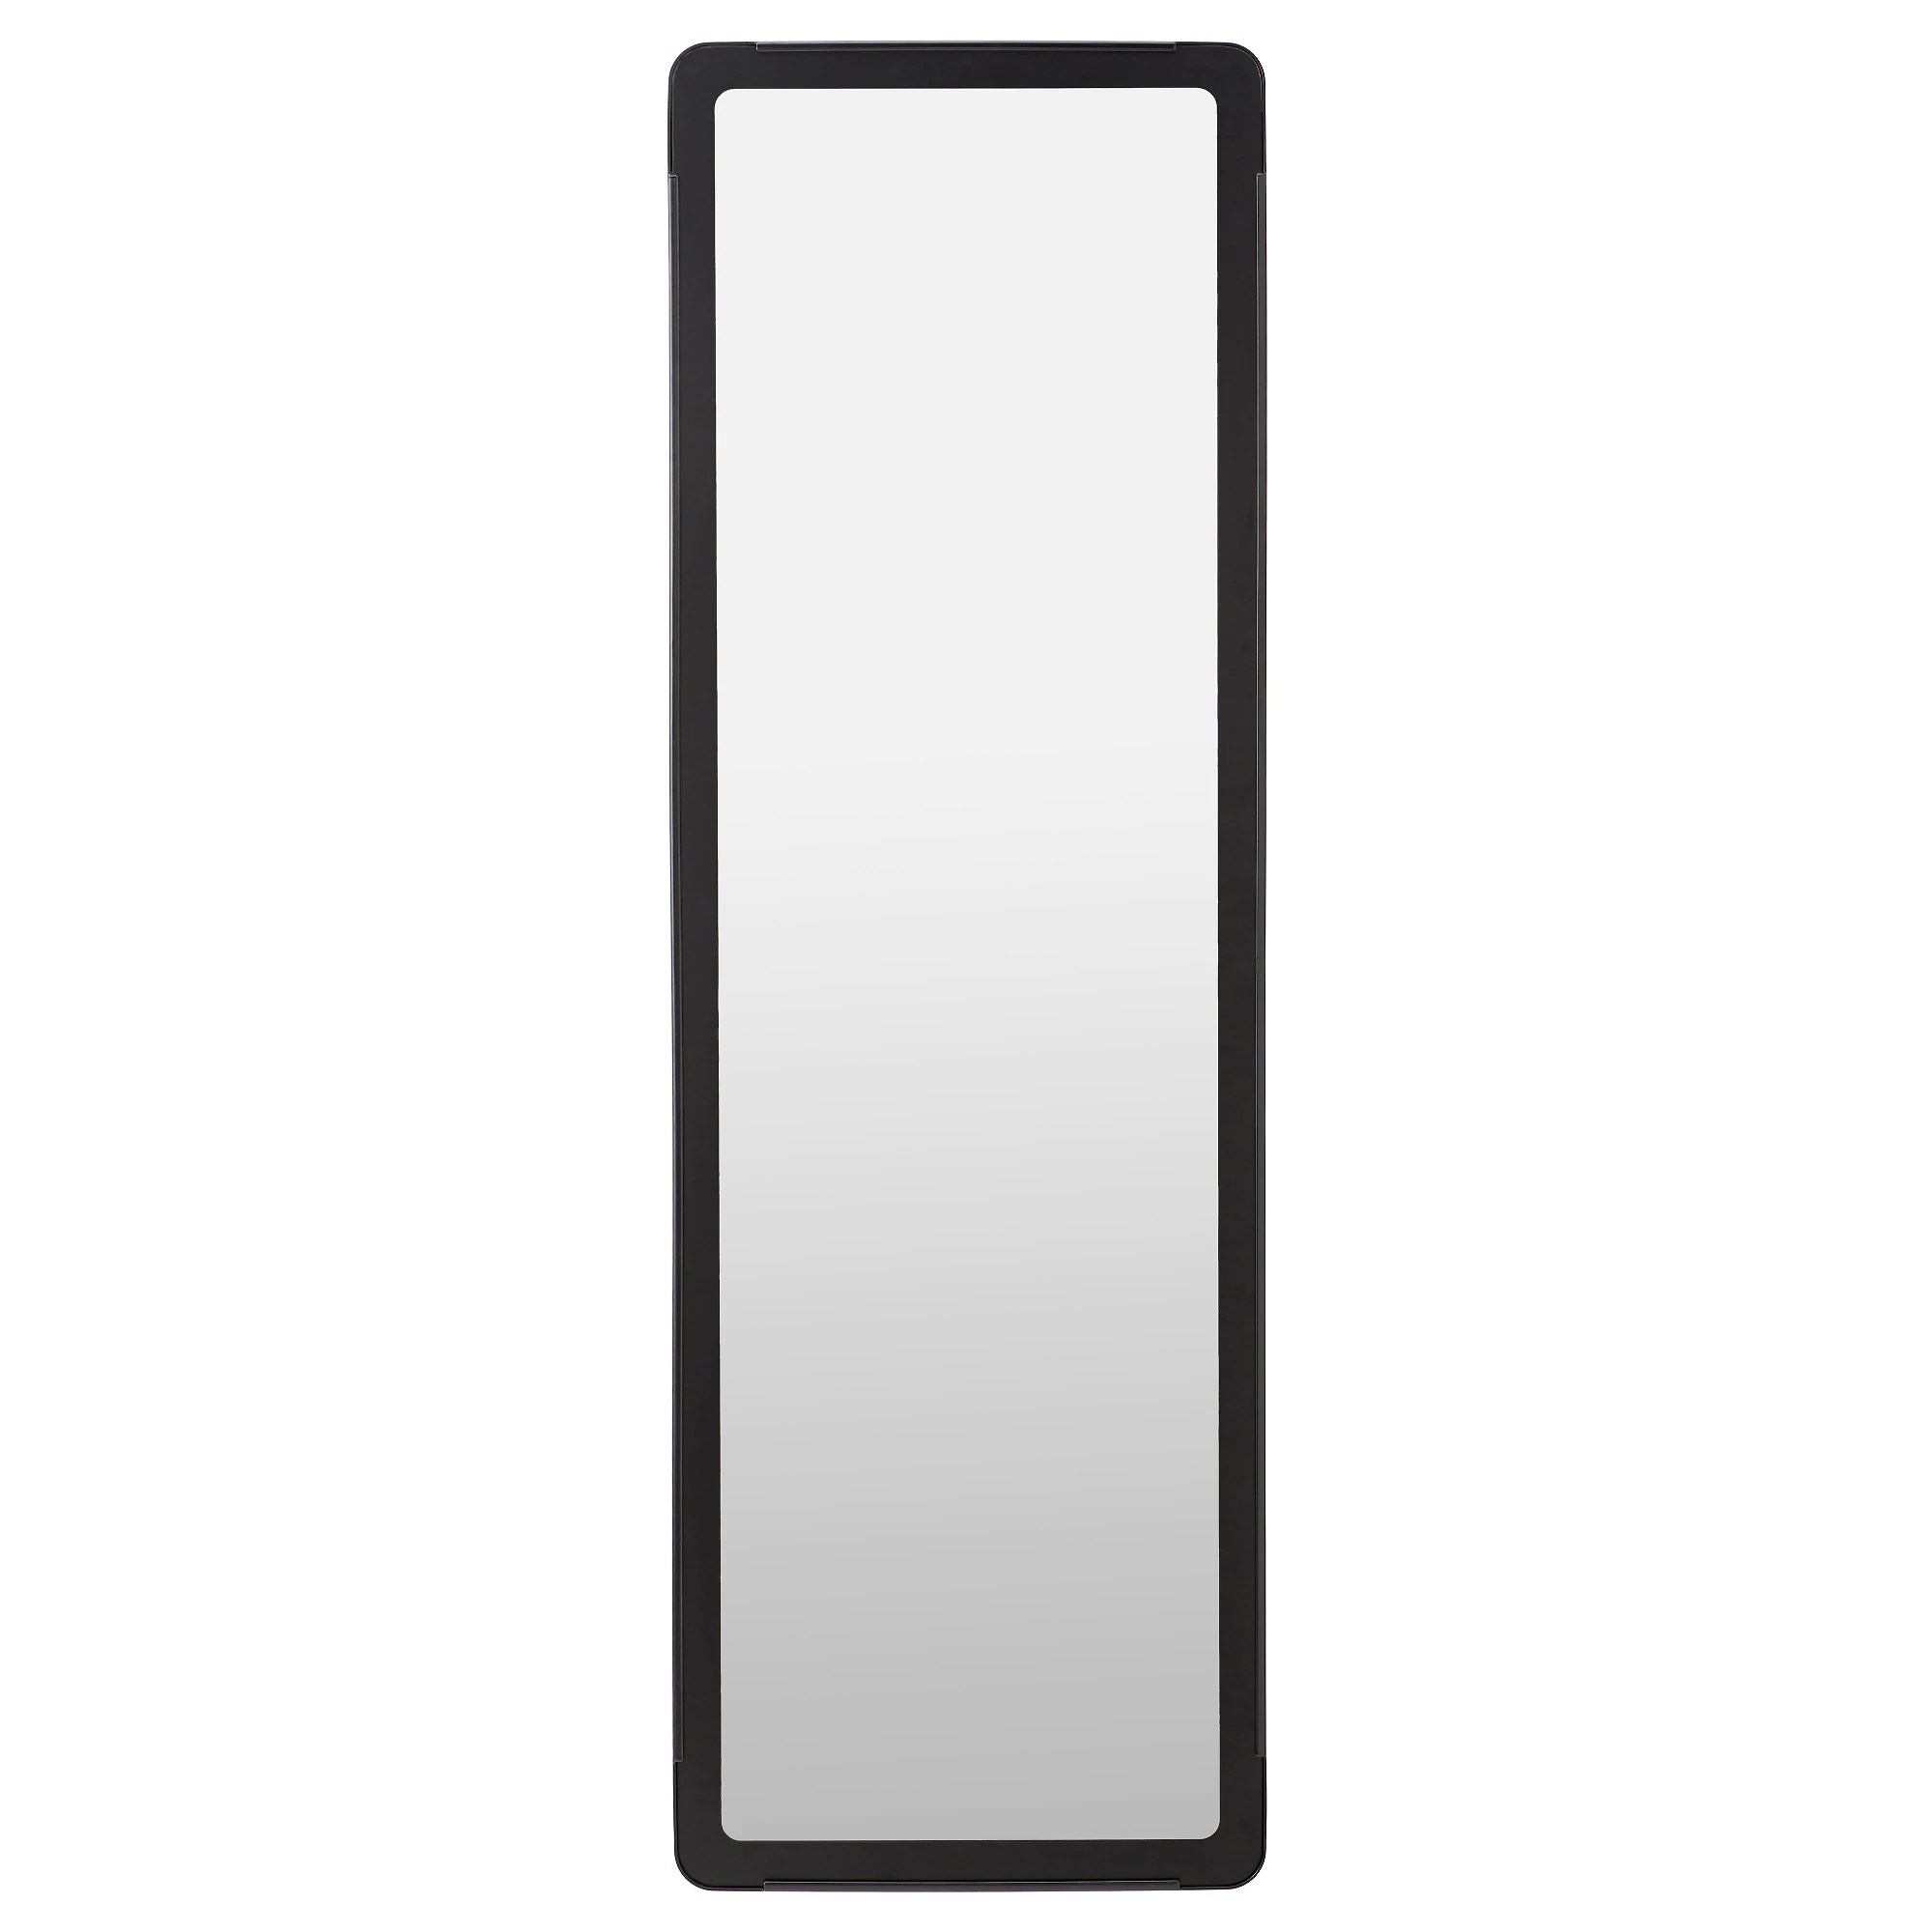 Ikea Spiegel 120 X 80 Ikea Full Length Mirror Home Decor